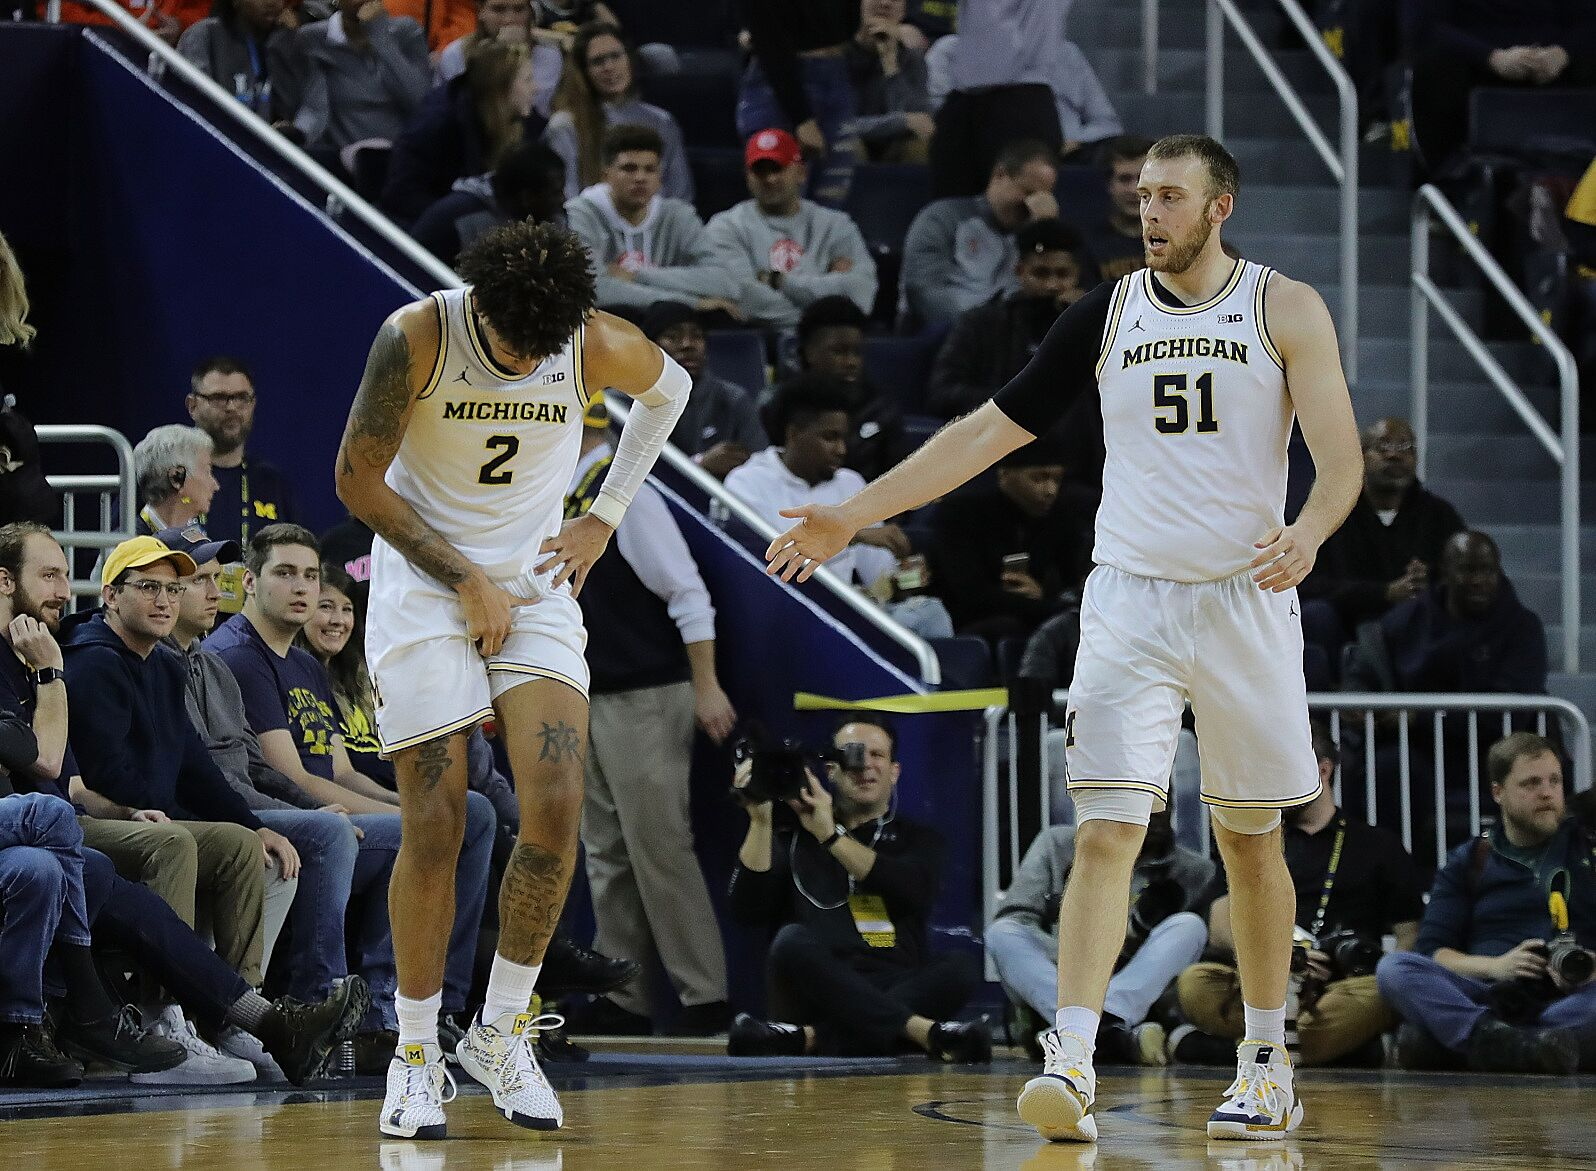 Michigan Basketball: Wolverines season officially in crisis mode